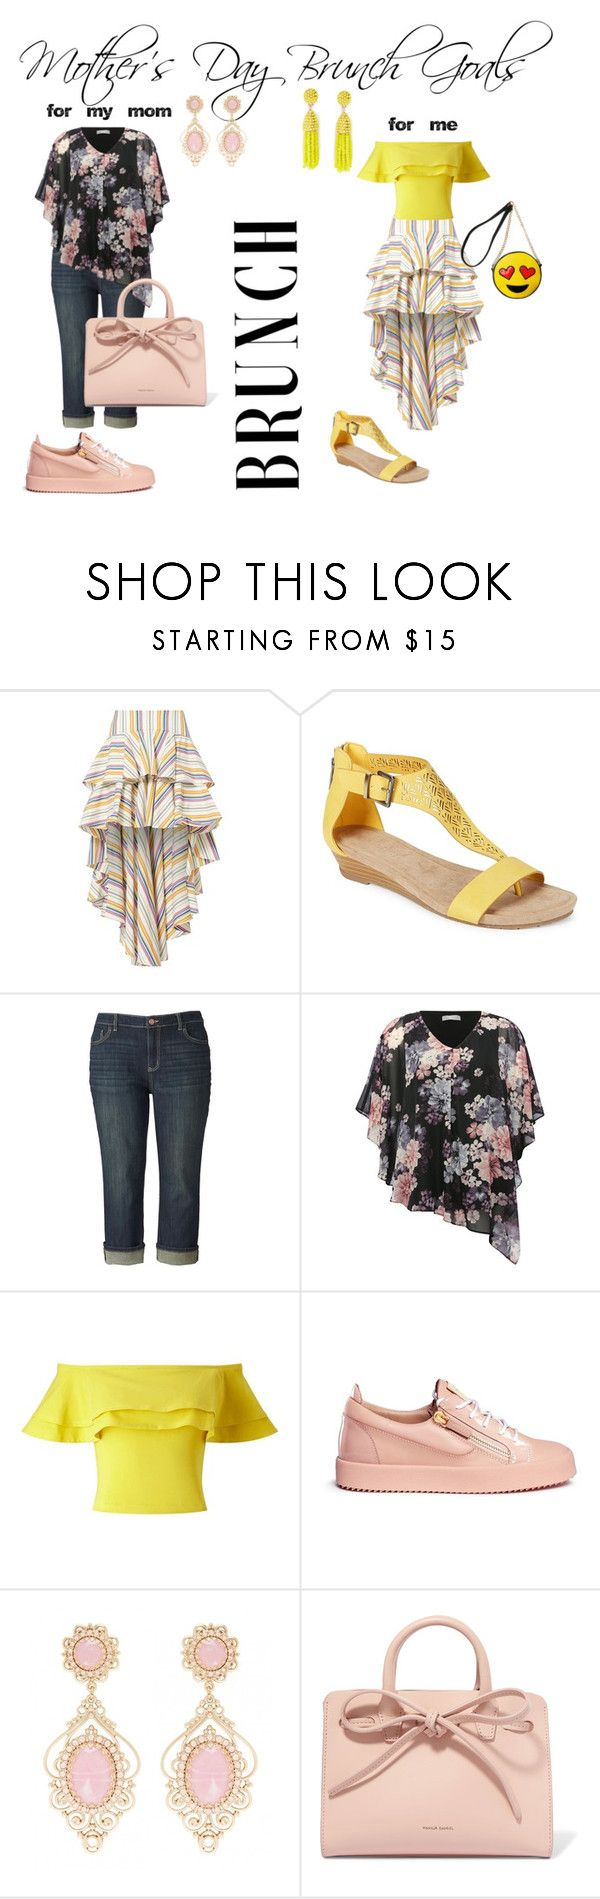 """""""Mother's Day Brunch Goals"""" by tanyakc on Polyvore featuring мода, Caroline Constas, Kenneth Cole Reaction, Simply Vera, M&Co, Miss Selfridge, Giuseppe Zanotti, Mansur Gavriel, Olivia Miller и brunch"""